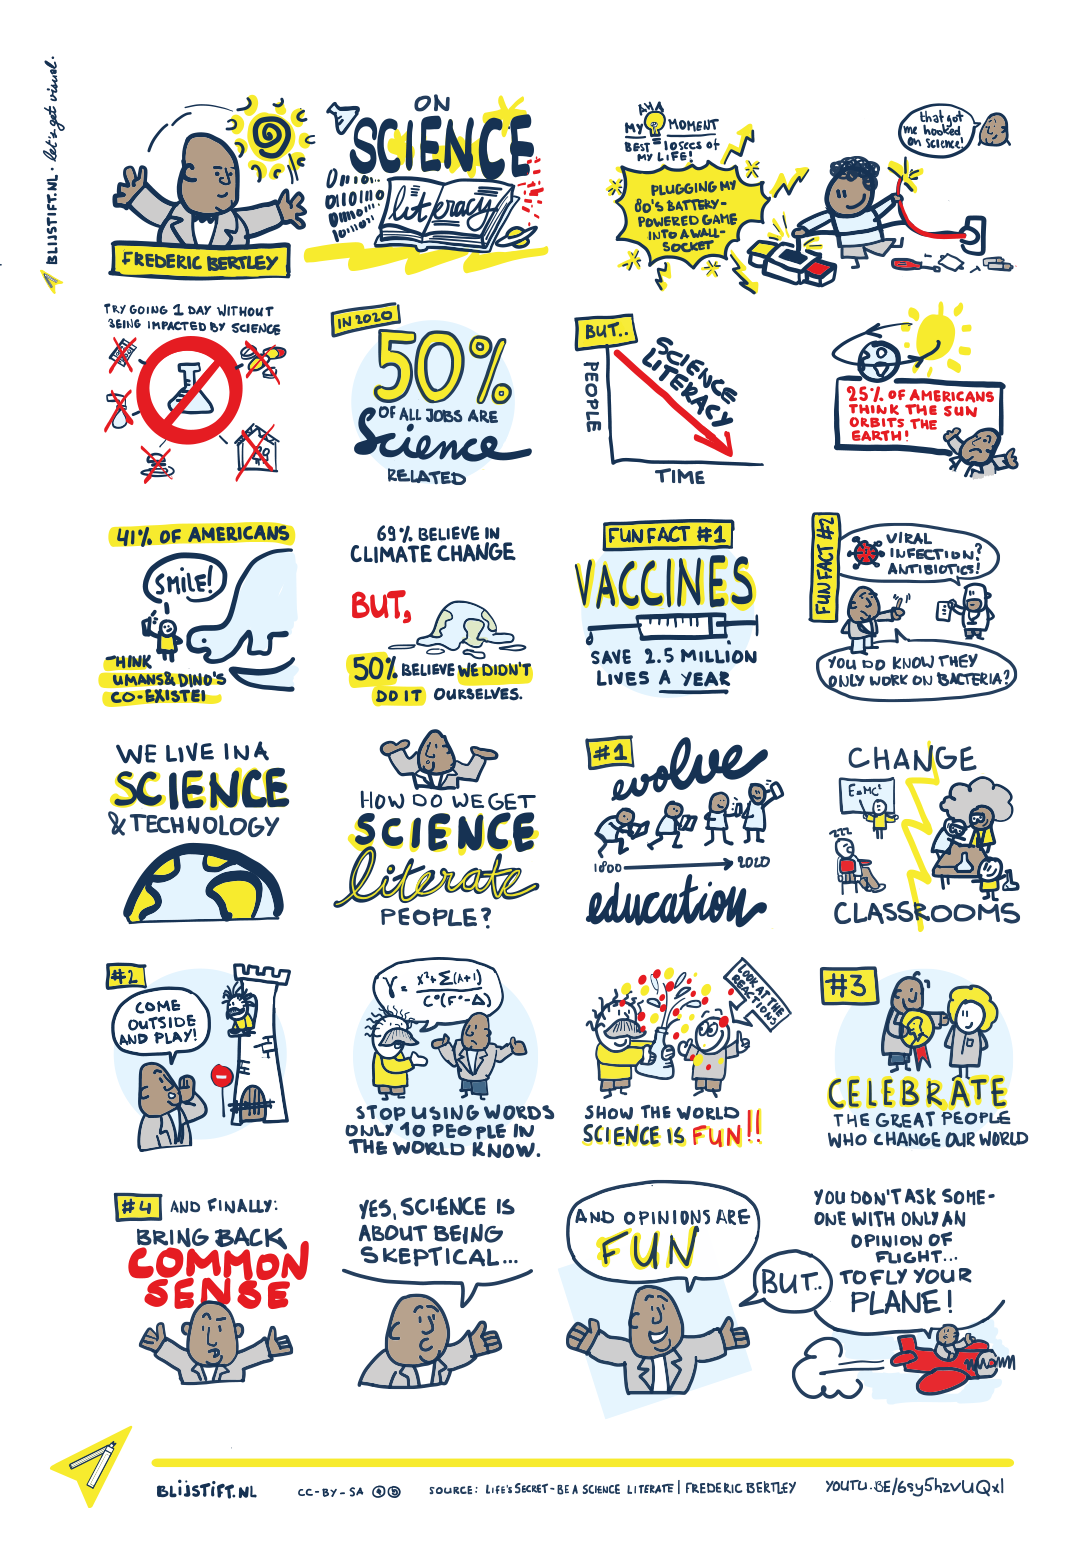 Sketchnote/infographic about Frederic Bertley's TEDx talk on Science Literacy